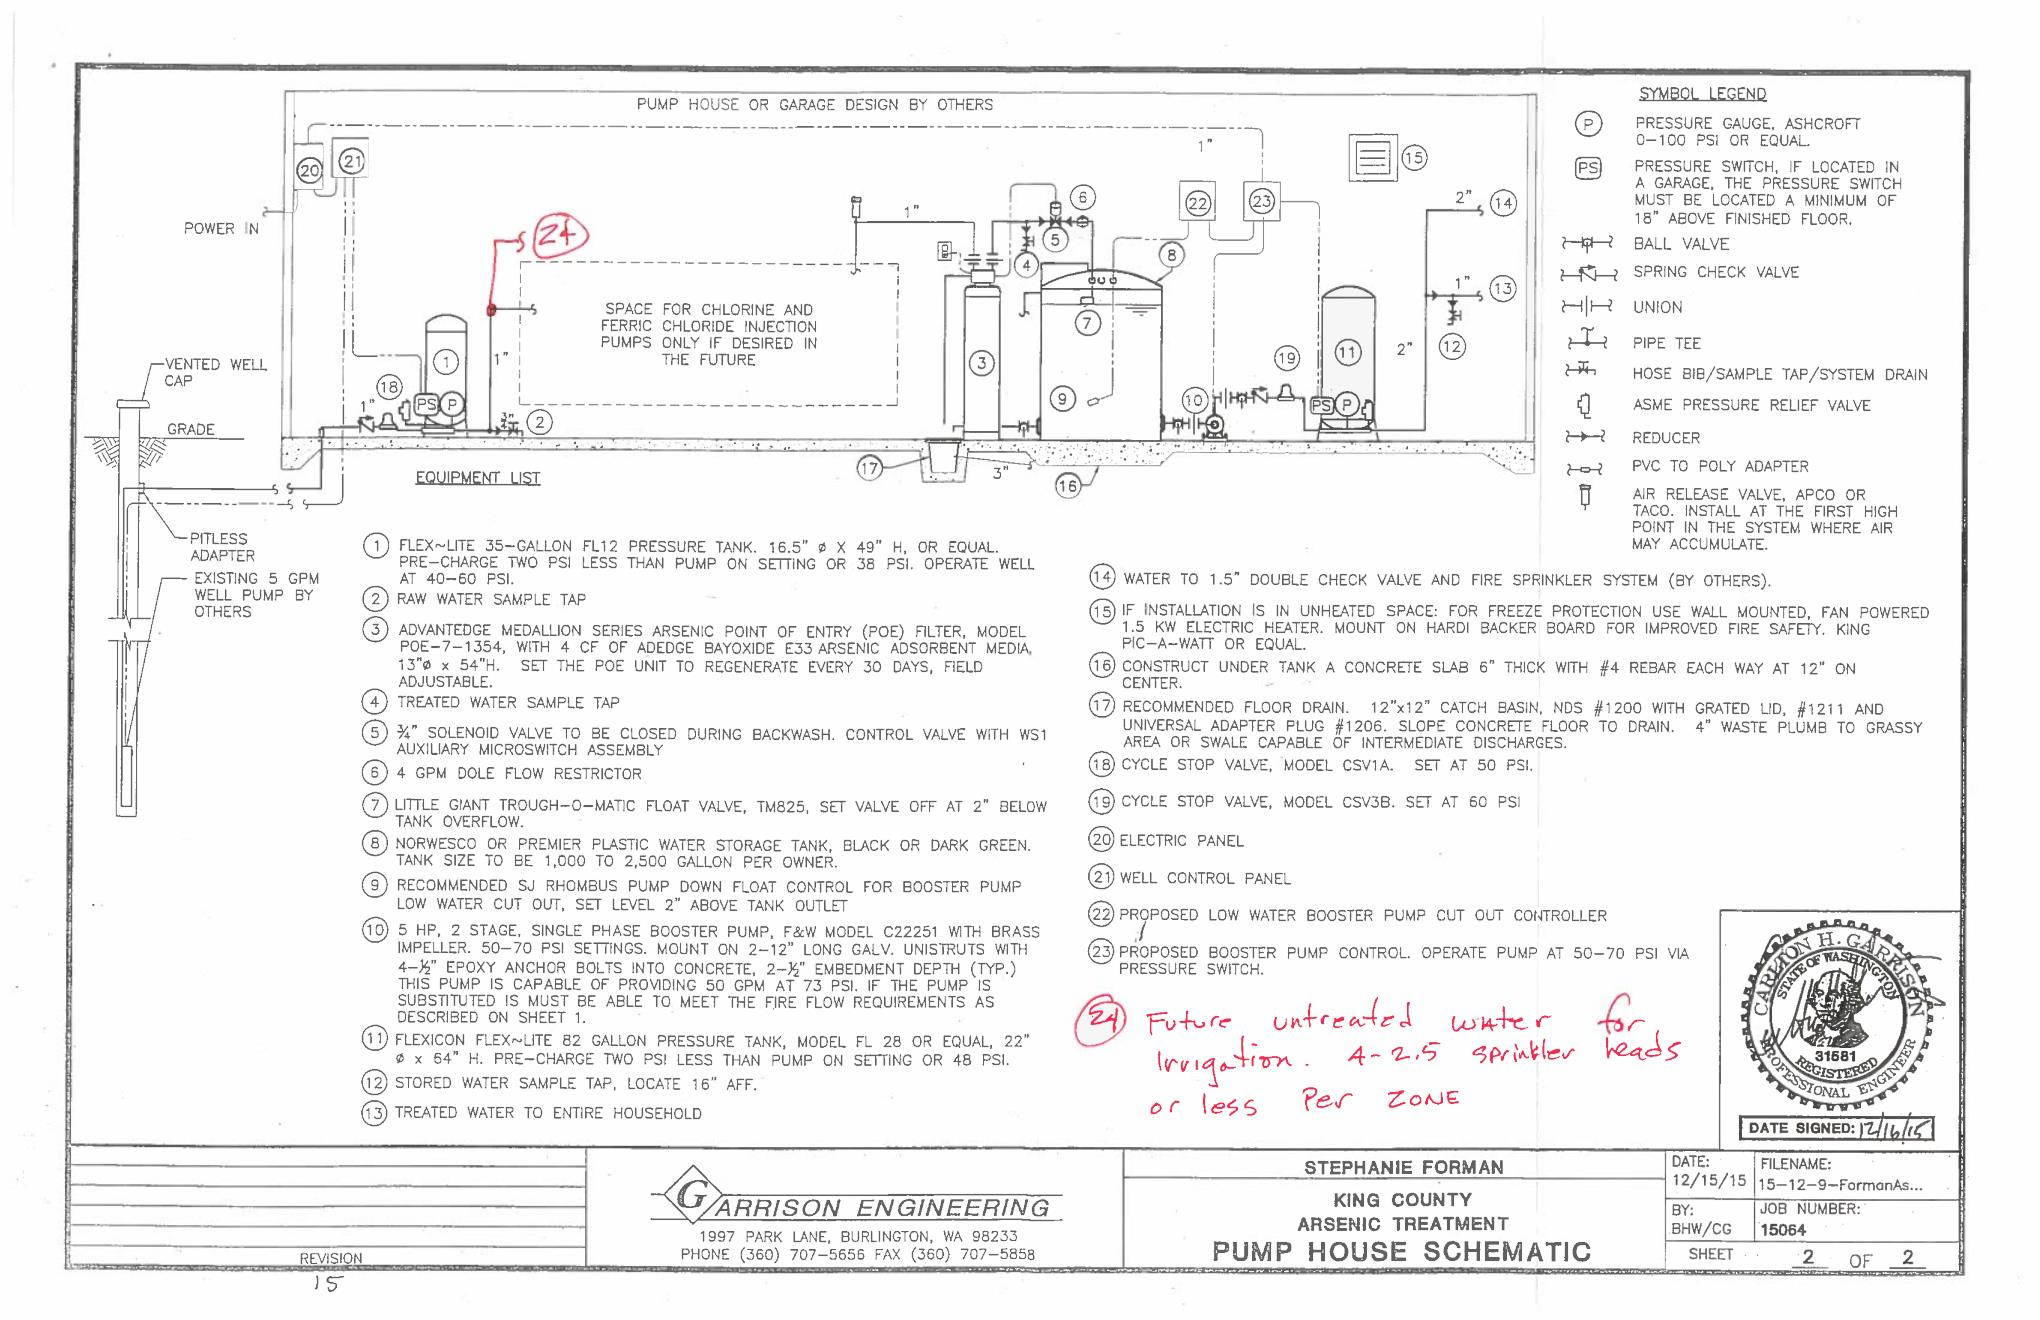 Pages From Well Arsenic Treatment Design Garrison Engineering 12 Diagram 1 Black Is In Check 2 Double 2015